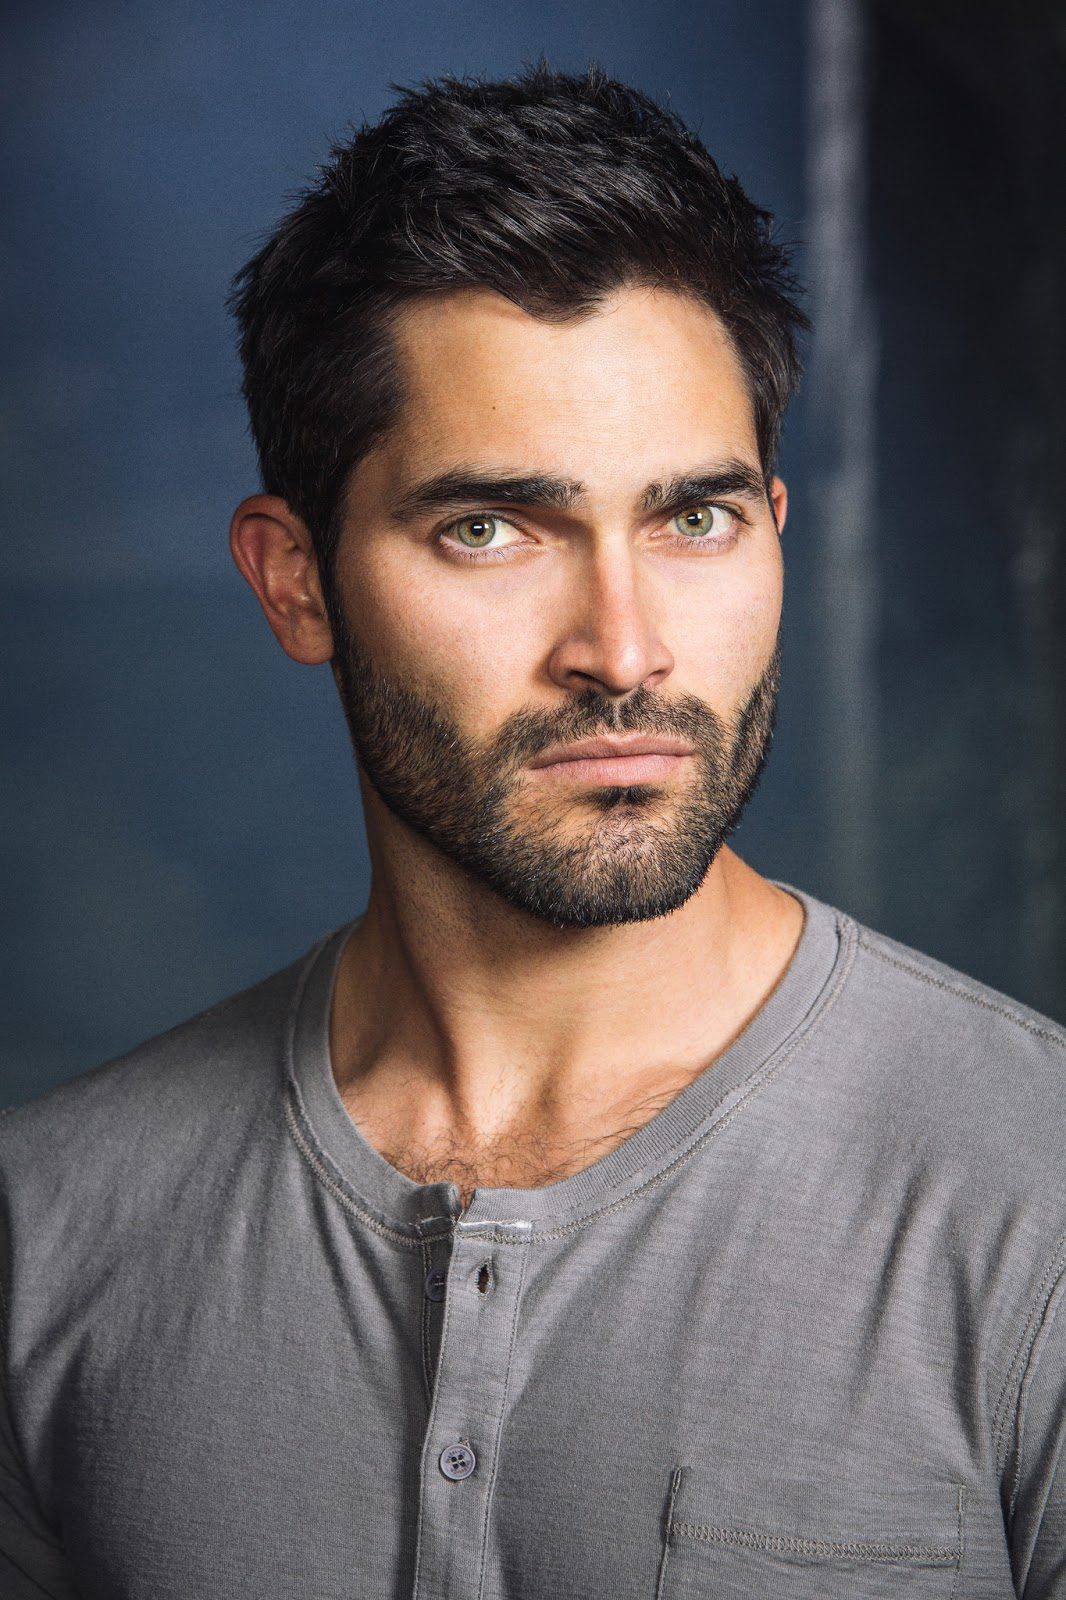 Who does Derek Hale end up with